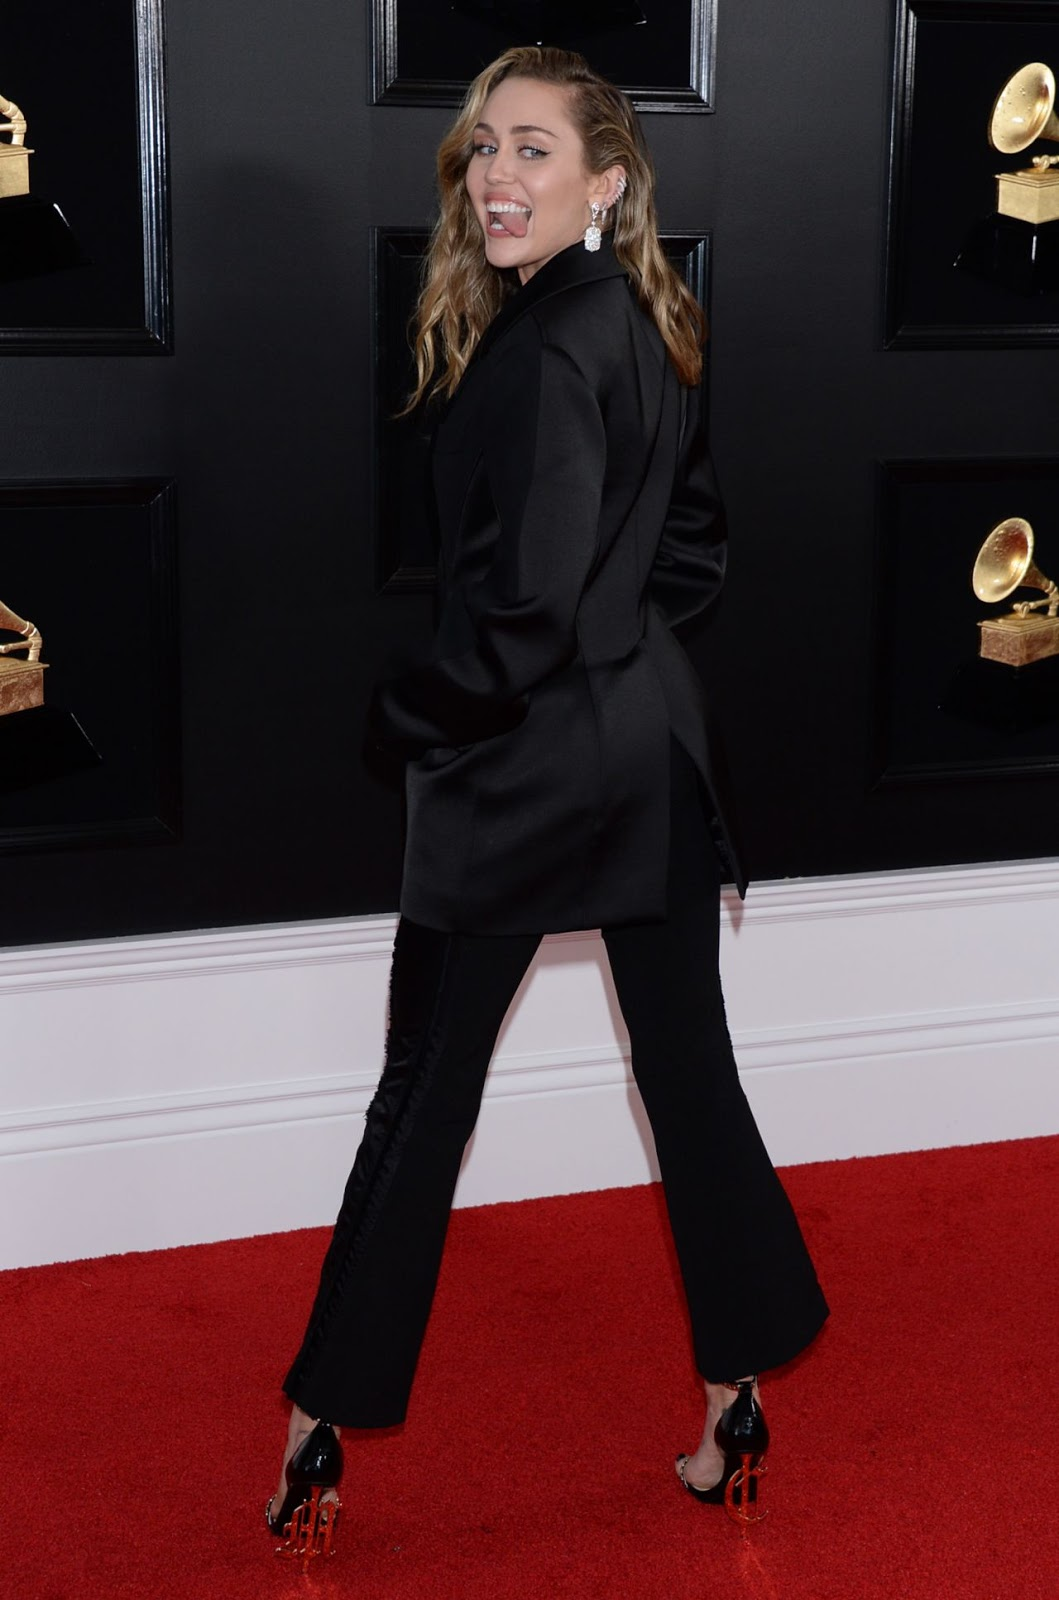 Miley Cyrus goes braless in black tuxedo at the 2019 Grammys